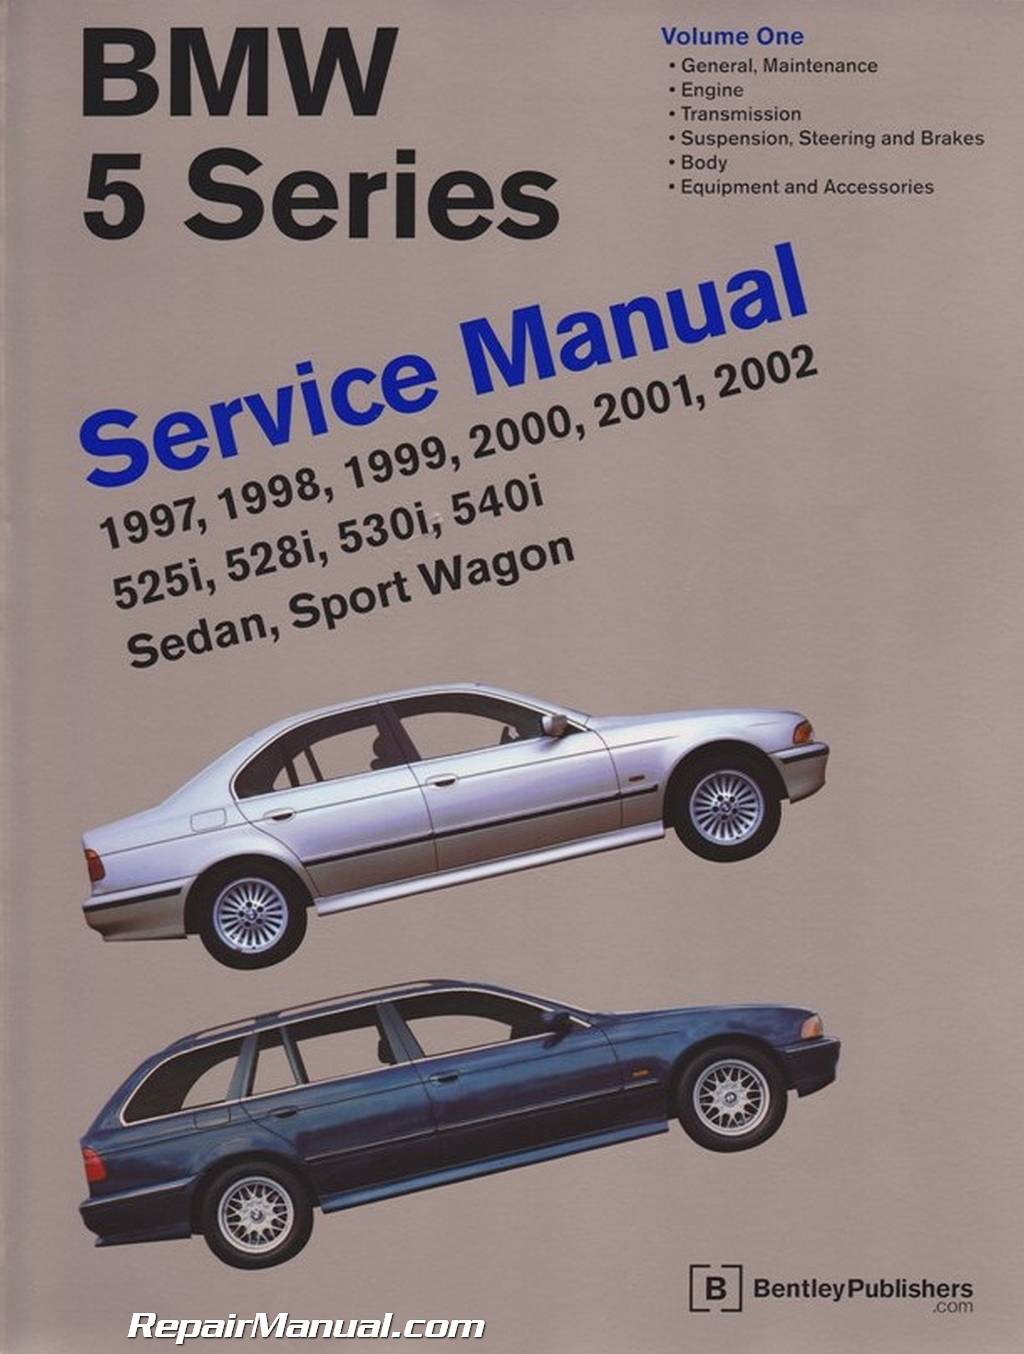 bmw 2000 528i owners manual various owner manual guide u2022 rh justk co bmw 4 series owners manual bmw 5 series owners manual 2017